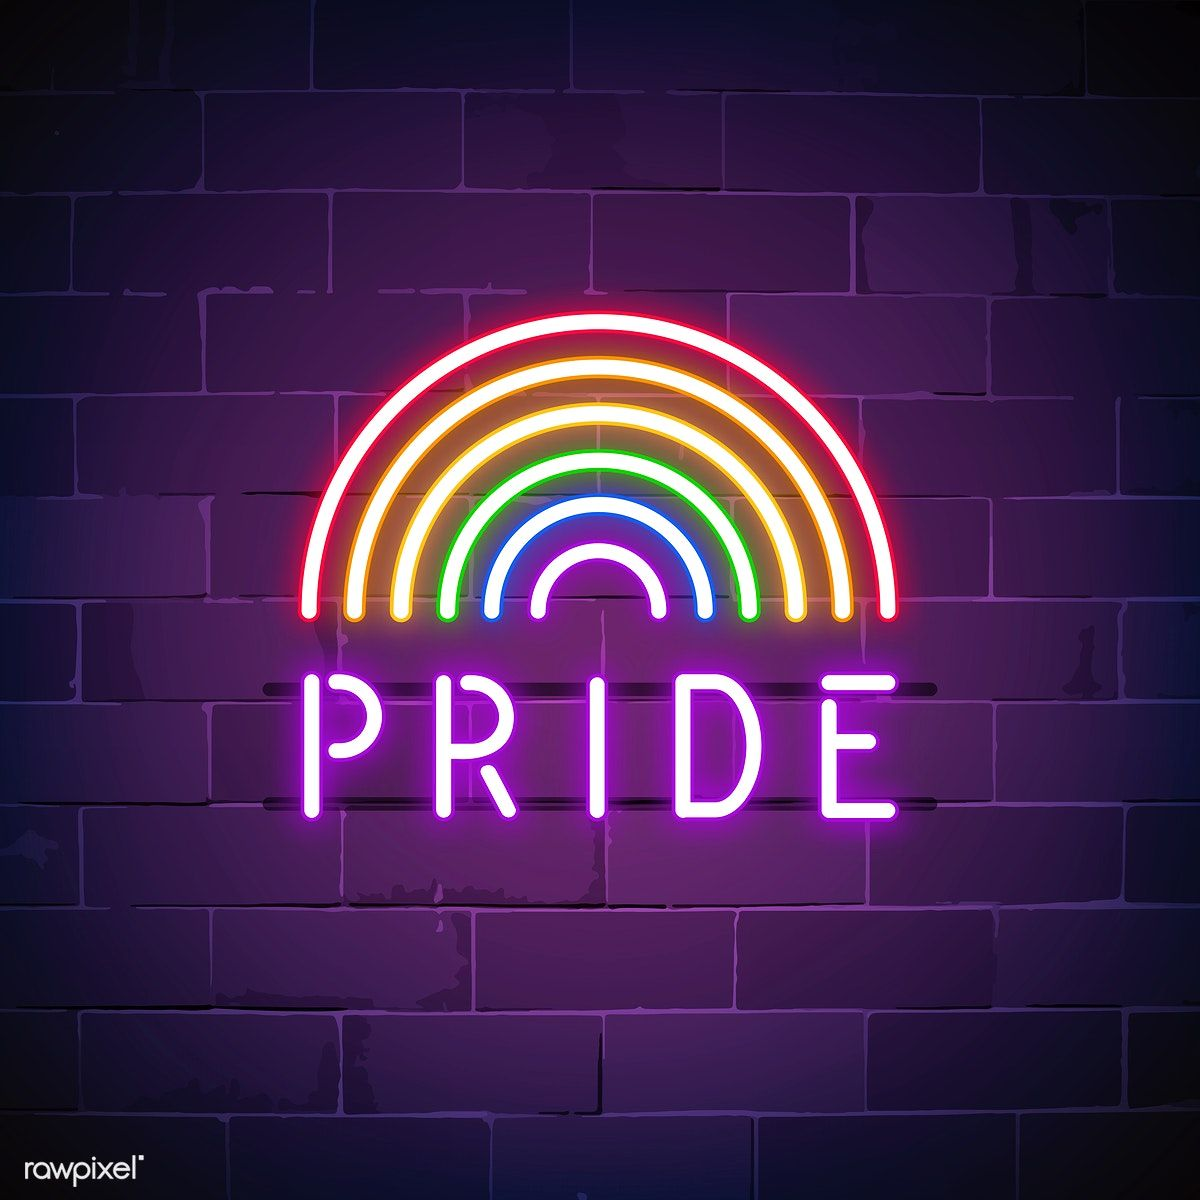 Rainbow Pride Neon Sign Vector Free Image By Rawpixel Com